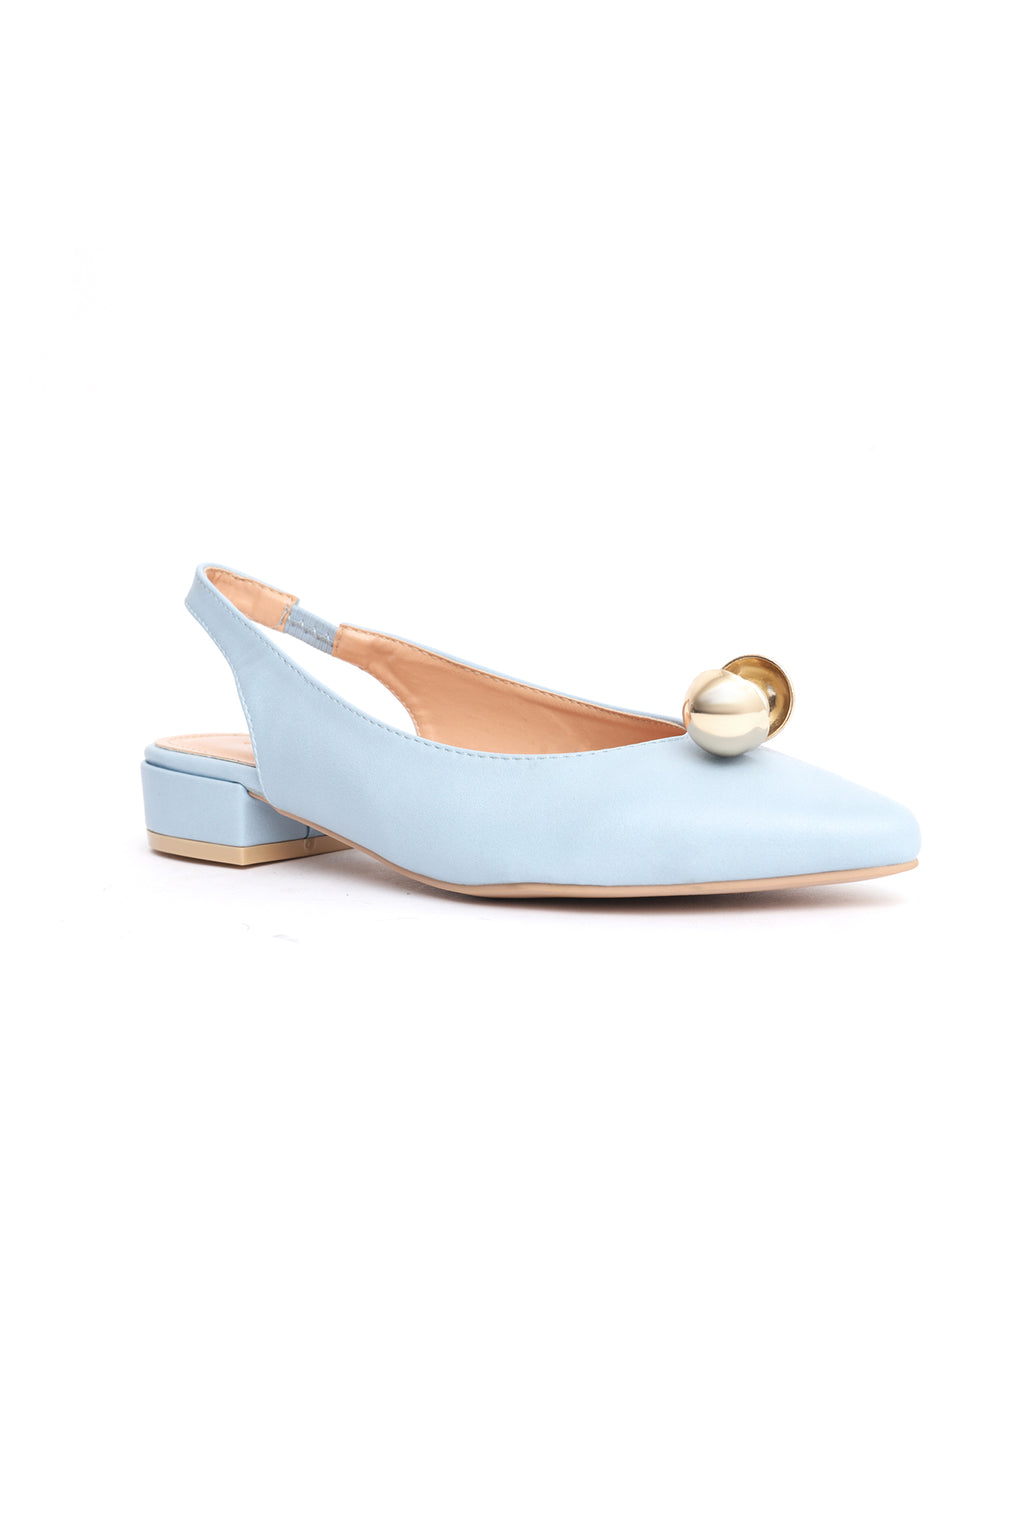 OYSTER SLINGBACKS -BLUE